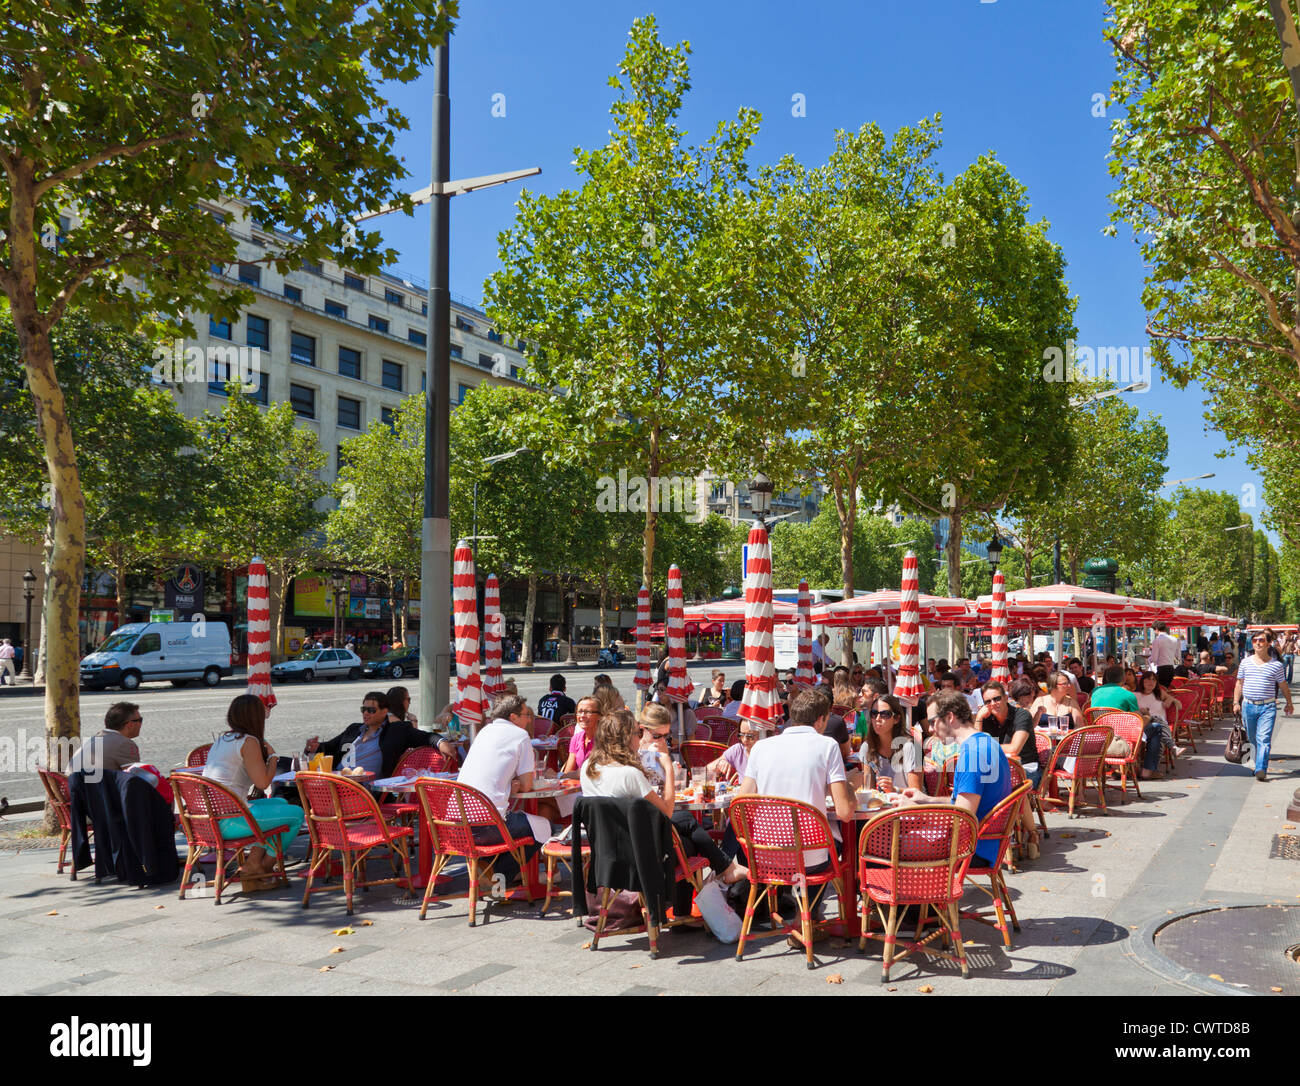 People sitting at a pavement cafe on the famous street the Champs Elysees avenue Paris France EU Europe - Stock Image